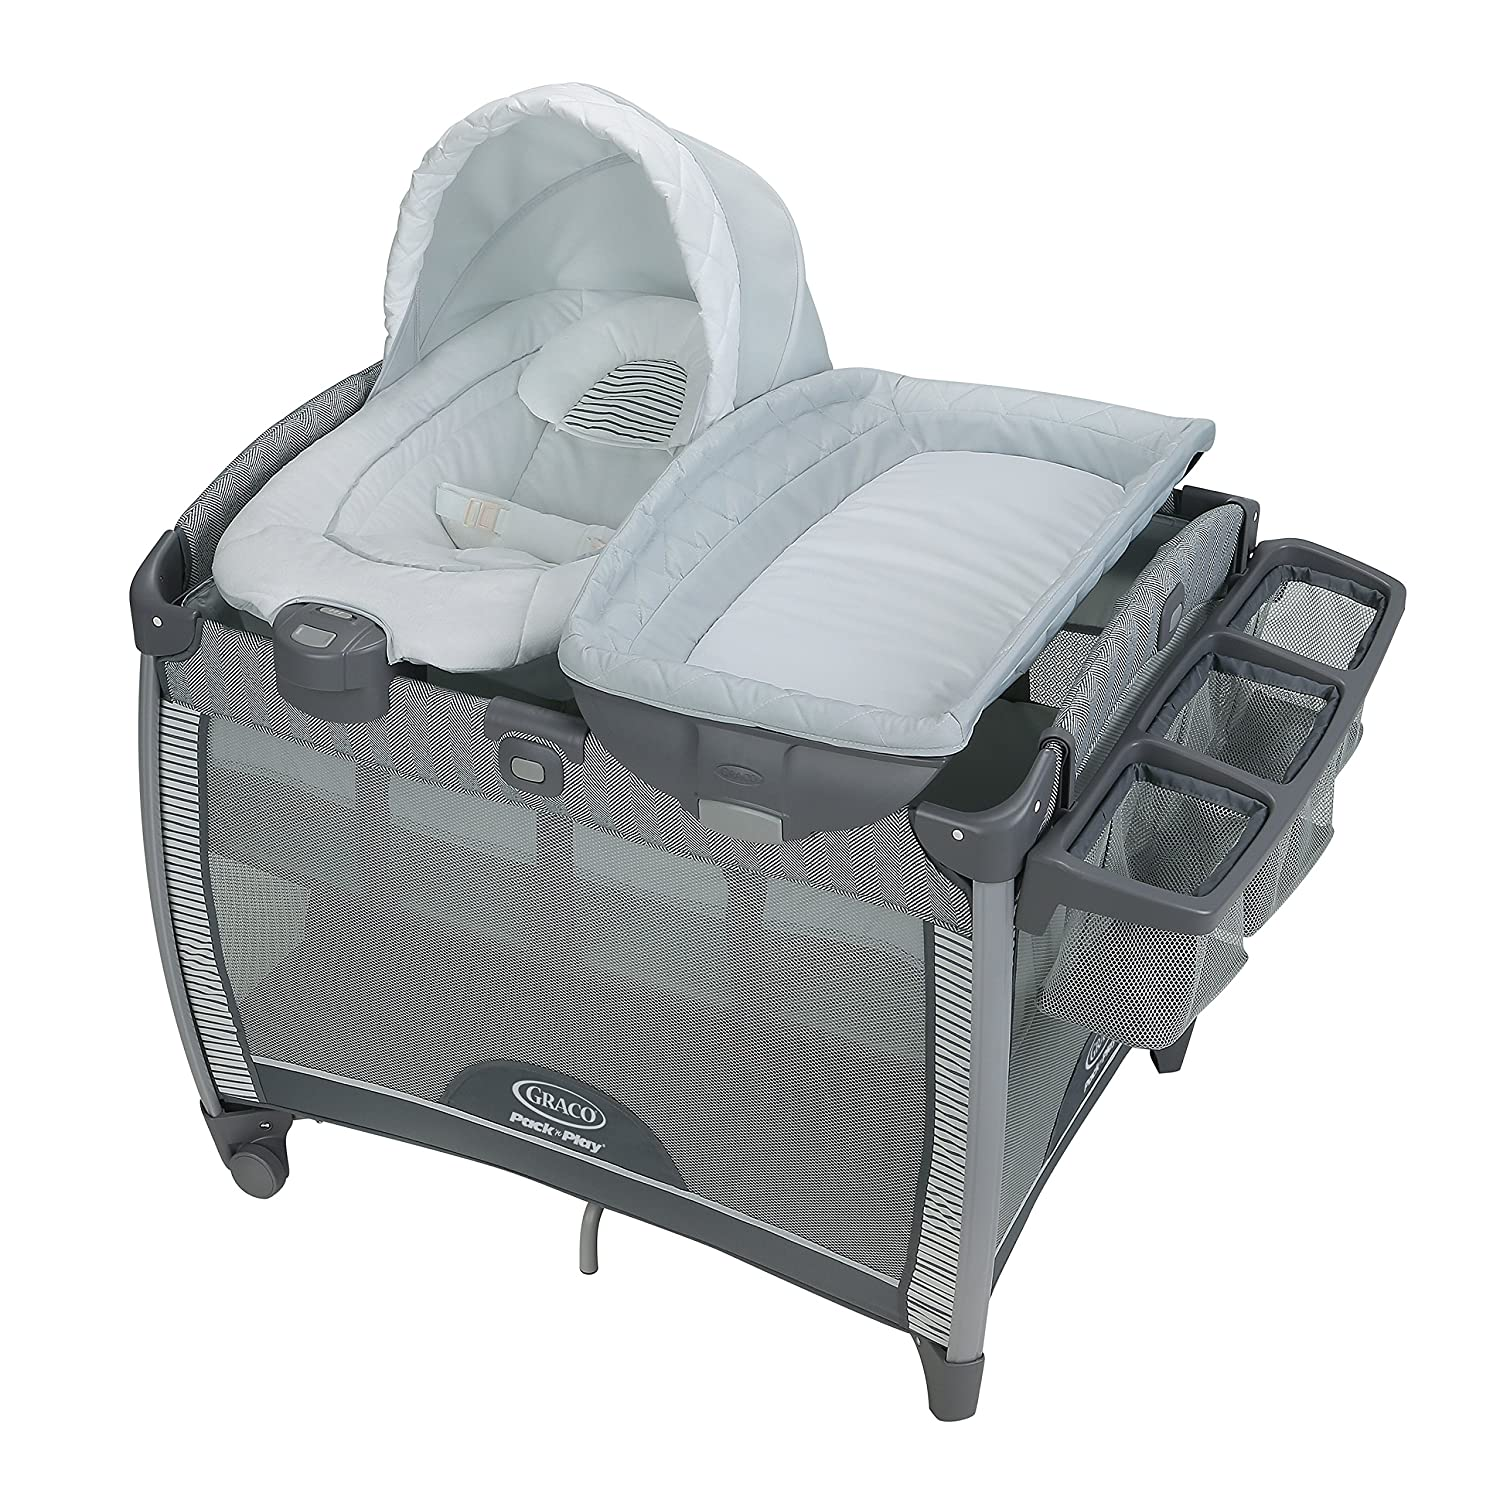 Graco Pack 'n Play Quick Connect Playard and Removable Portable Bouncer, Raleigh Graco Baby 2013696